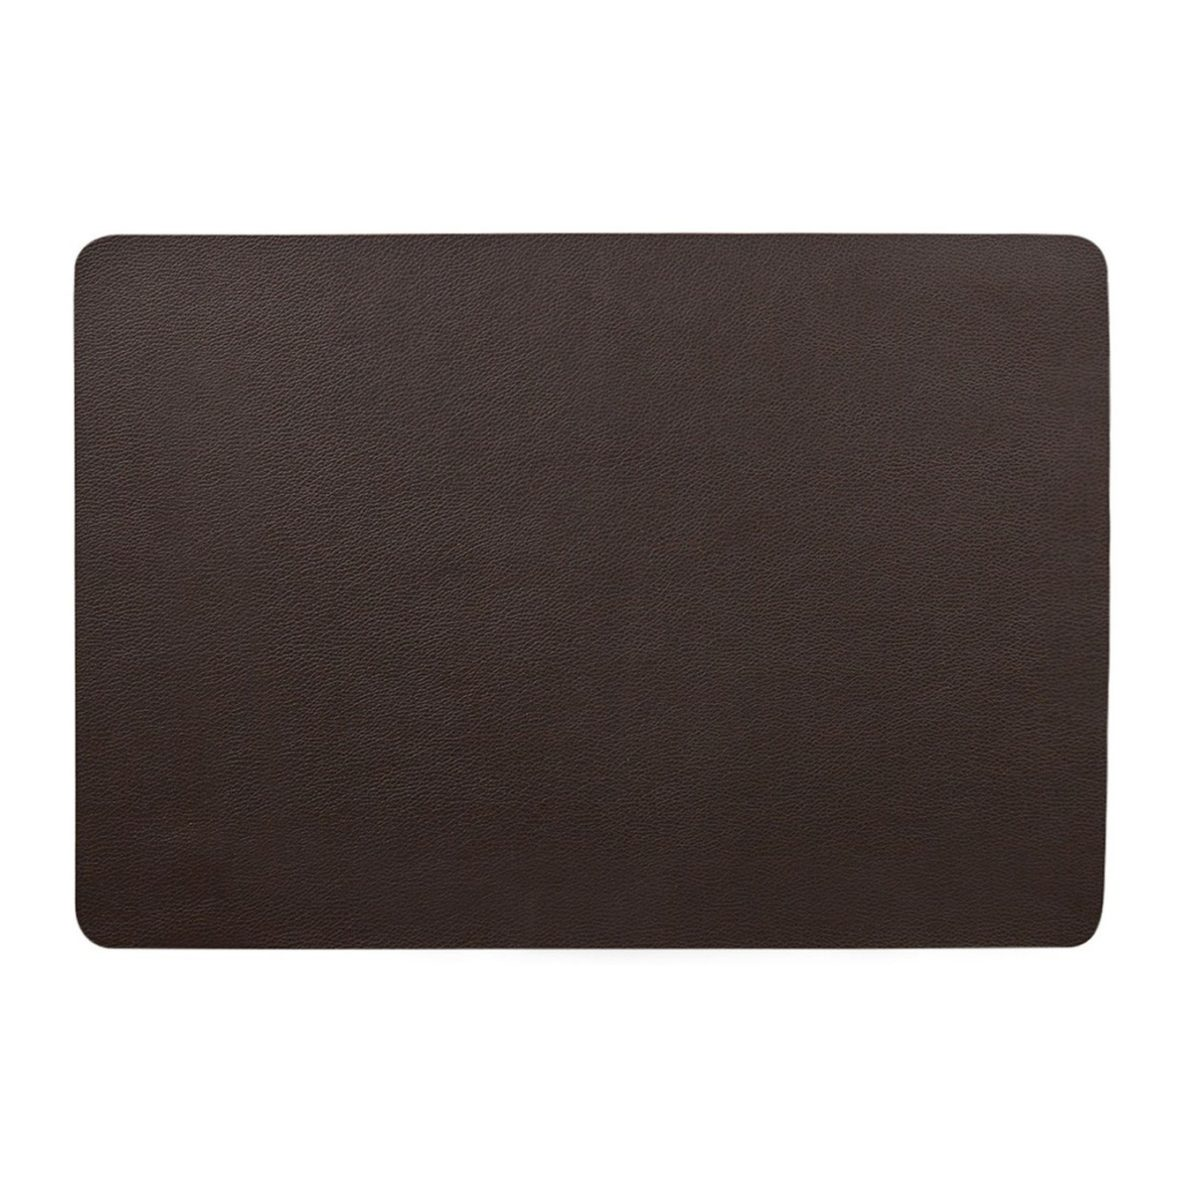 schermafbeelding 2019 10 19 om 12.23.19 1200x1198 - Placemat Leather optic fine chocolate 46*33 cm (7804420)